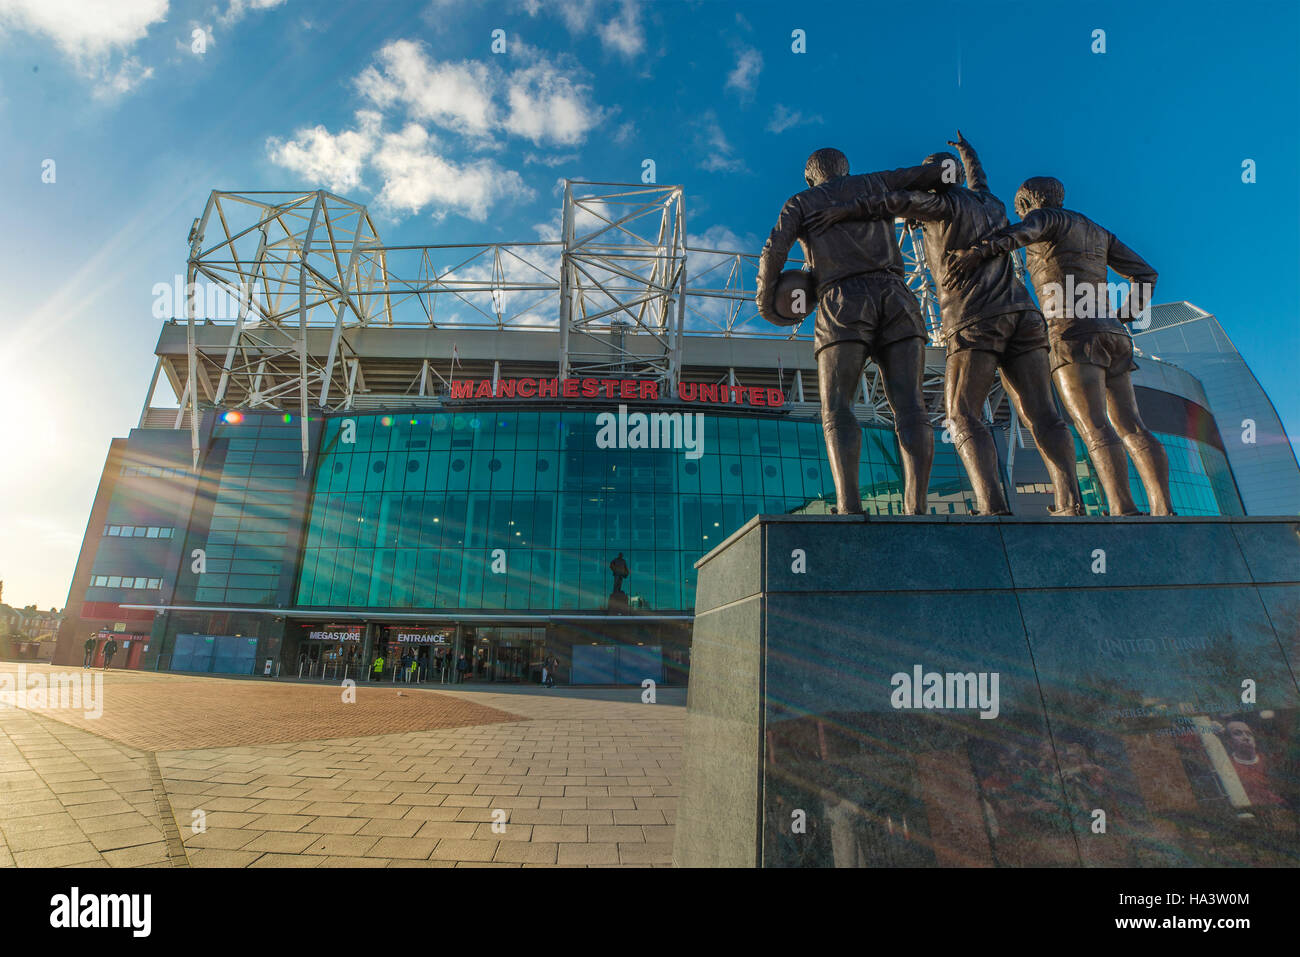 Old Trafford Football Ground, Home of Manchester United - Stock Image